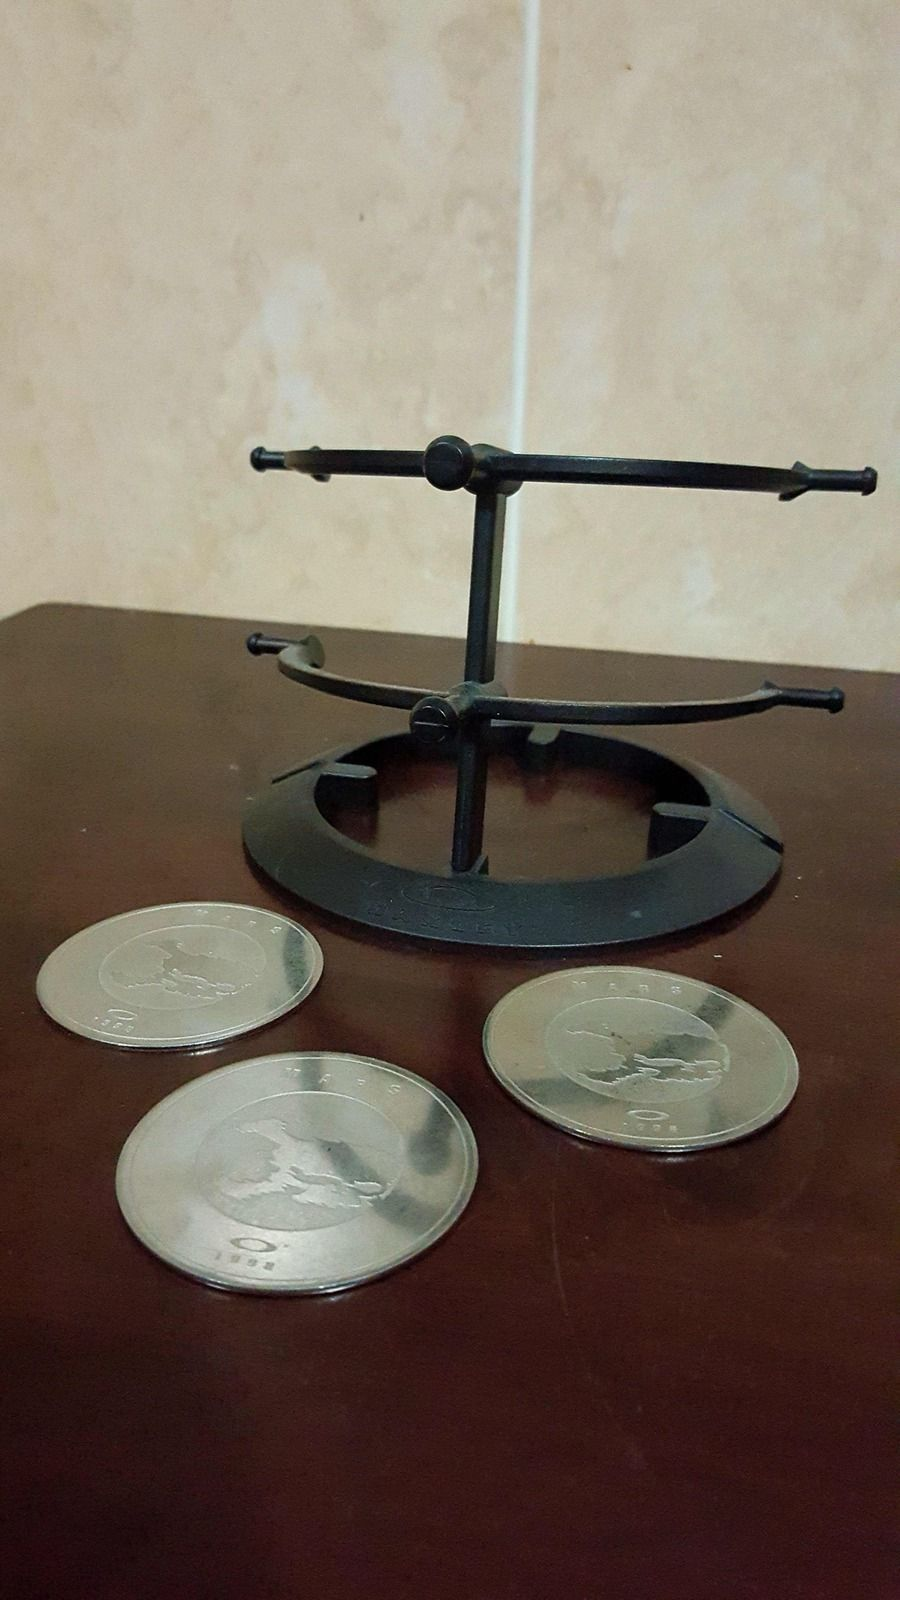 Mars coin and 2 tier stand - 20150921_203247_zpsiiecbxiu.jpg